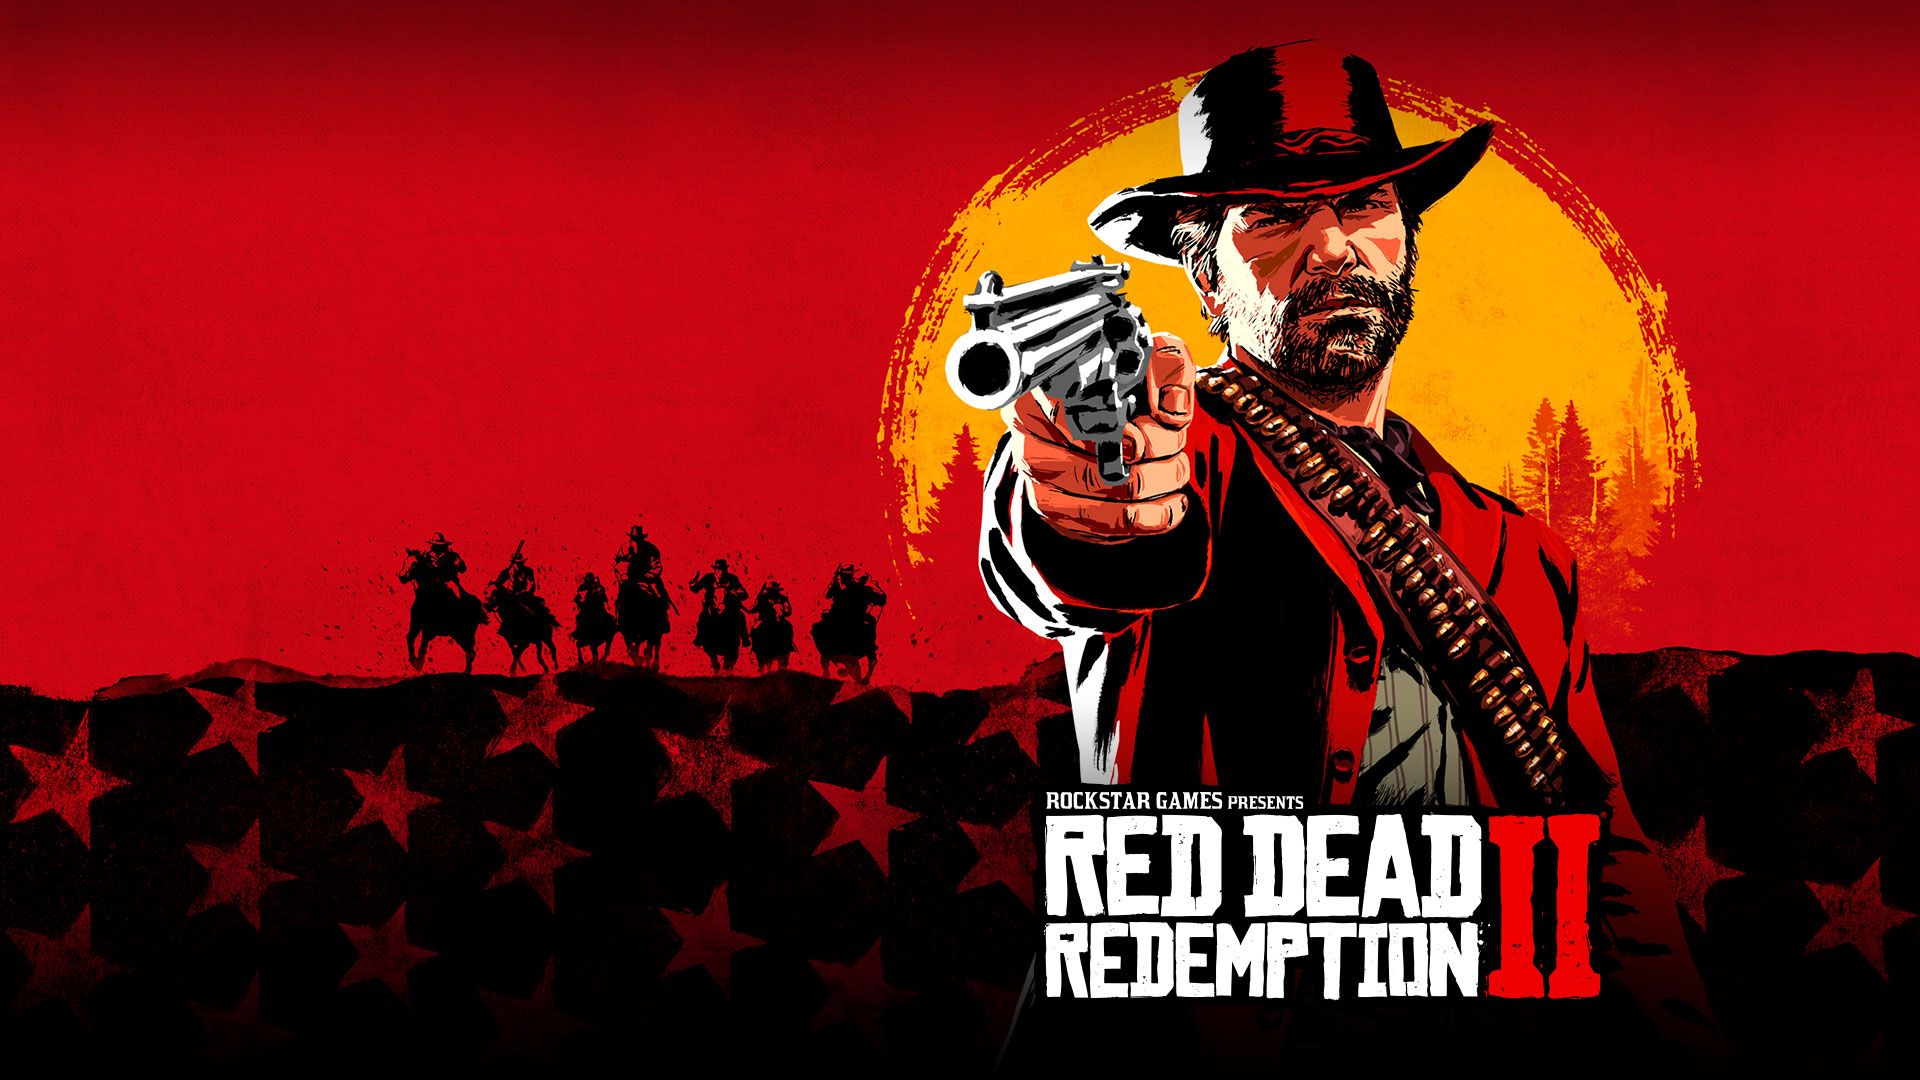 Rockstar Games Presents Red Dead Redemption 2, Artistic rendering of Arthur Morgan pointing a revolver up with a sunset behind them.